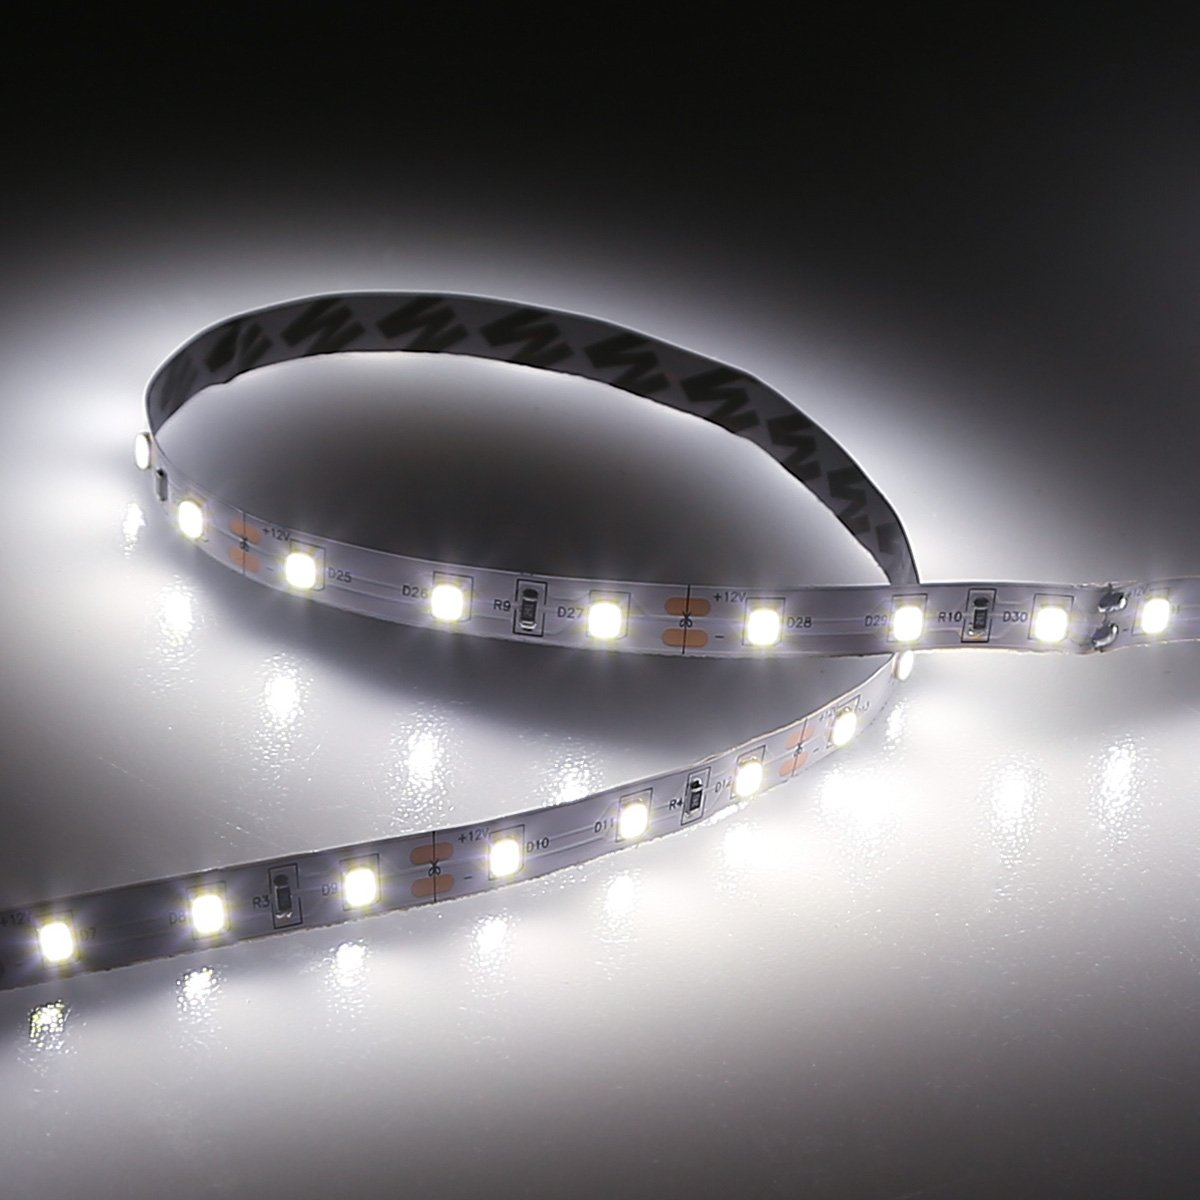 Amazon le 164ft led flexible light strip 300 units smd 2835 amazon le 164ft led flexible light strip 300 units smd 2835 leds 12v dc non waterproof light strips led ribbon diy christmas holiday home kitchen mozeypictures